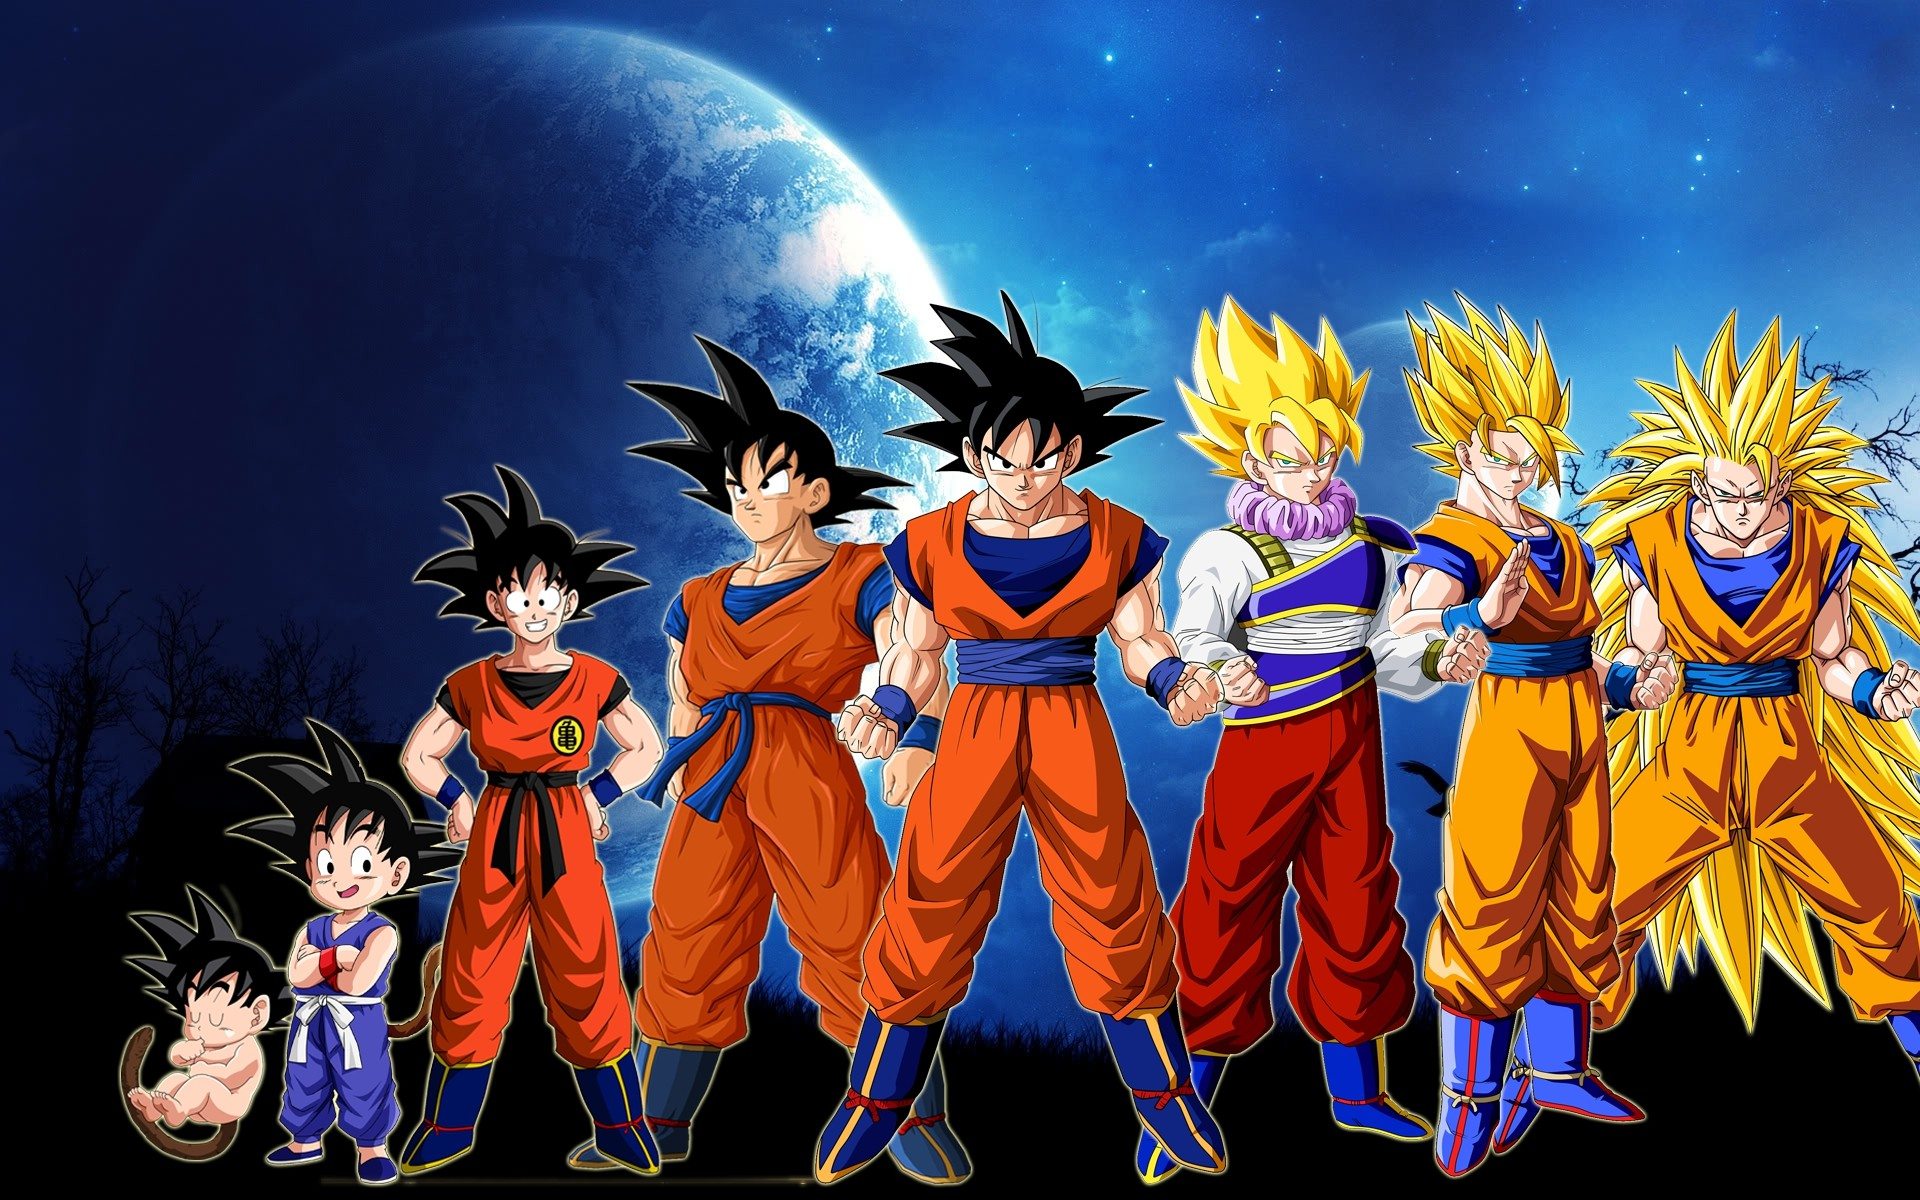 Related Wallpapers from Pokemon Backgrounds. Dragonball z